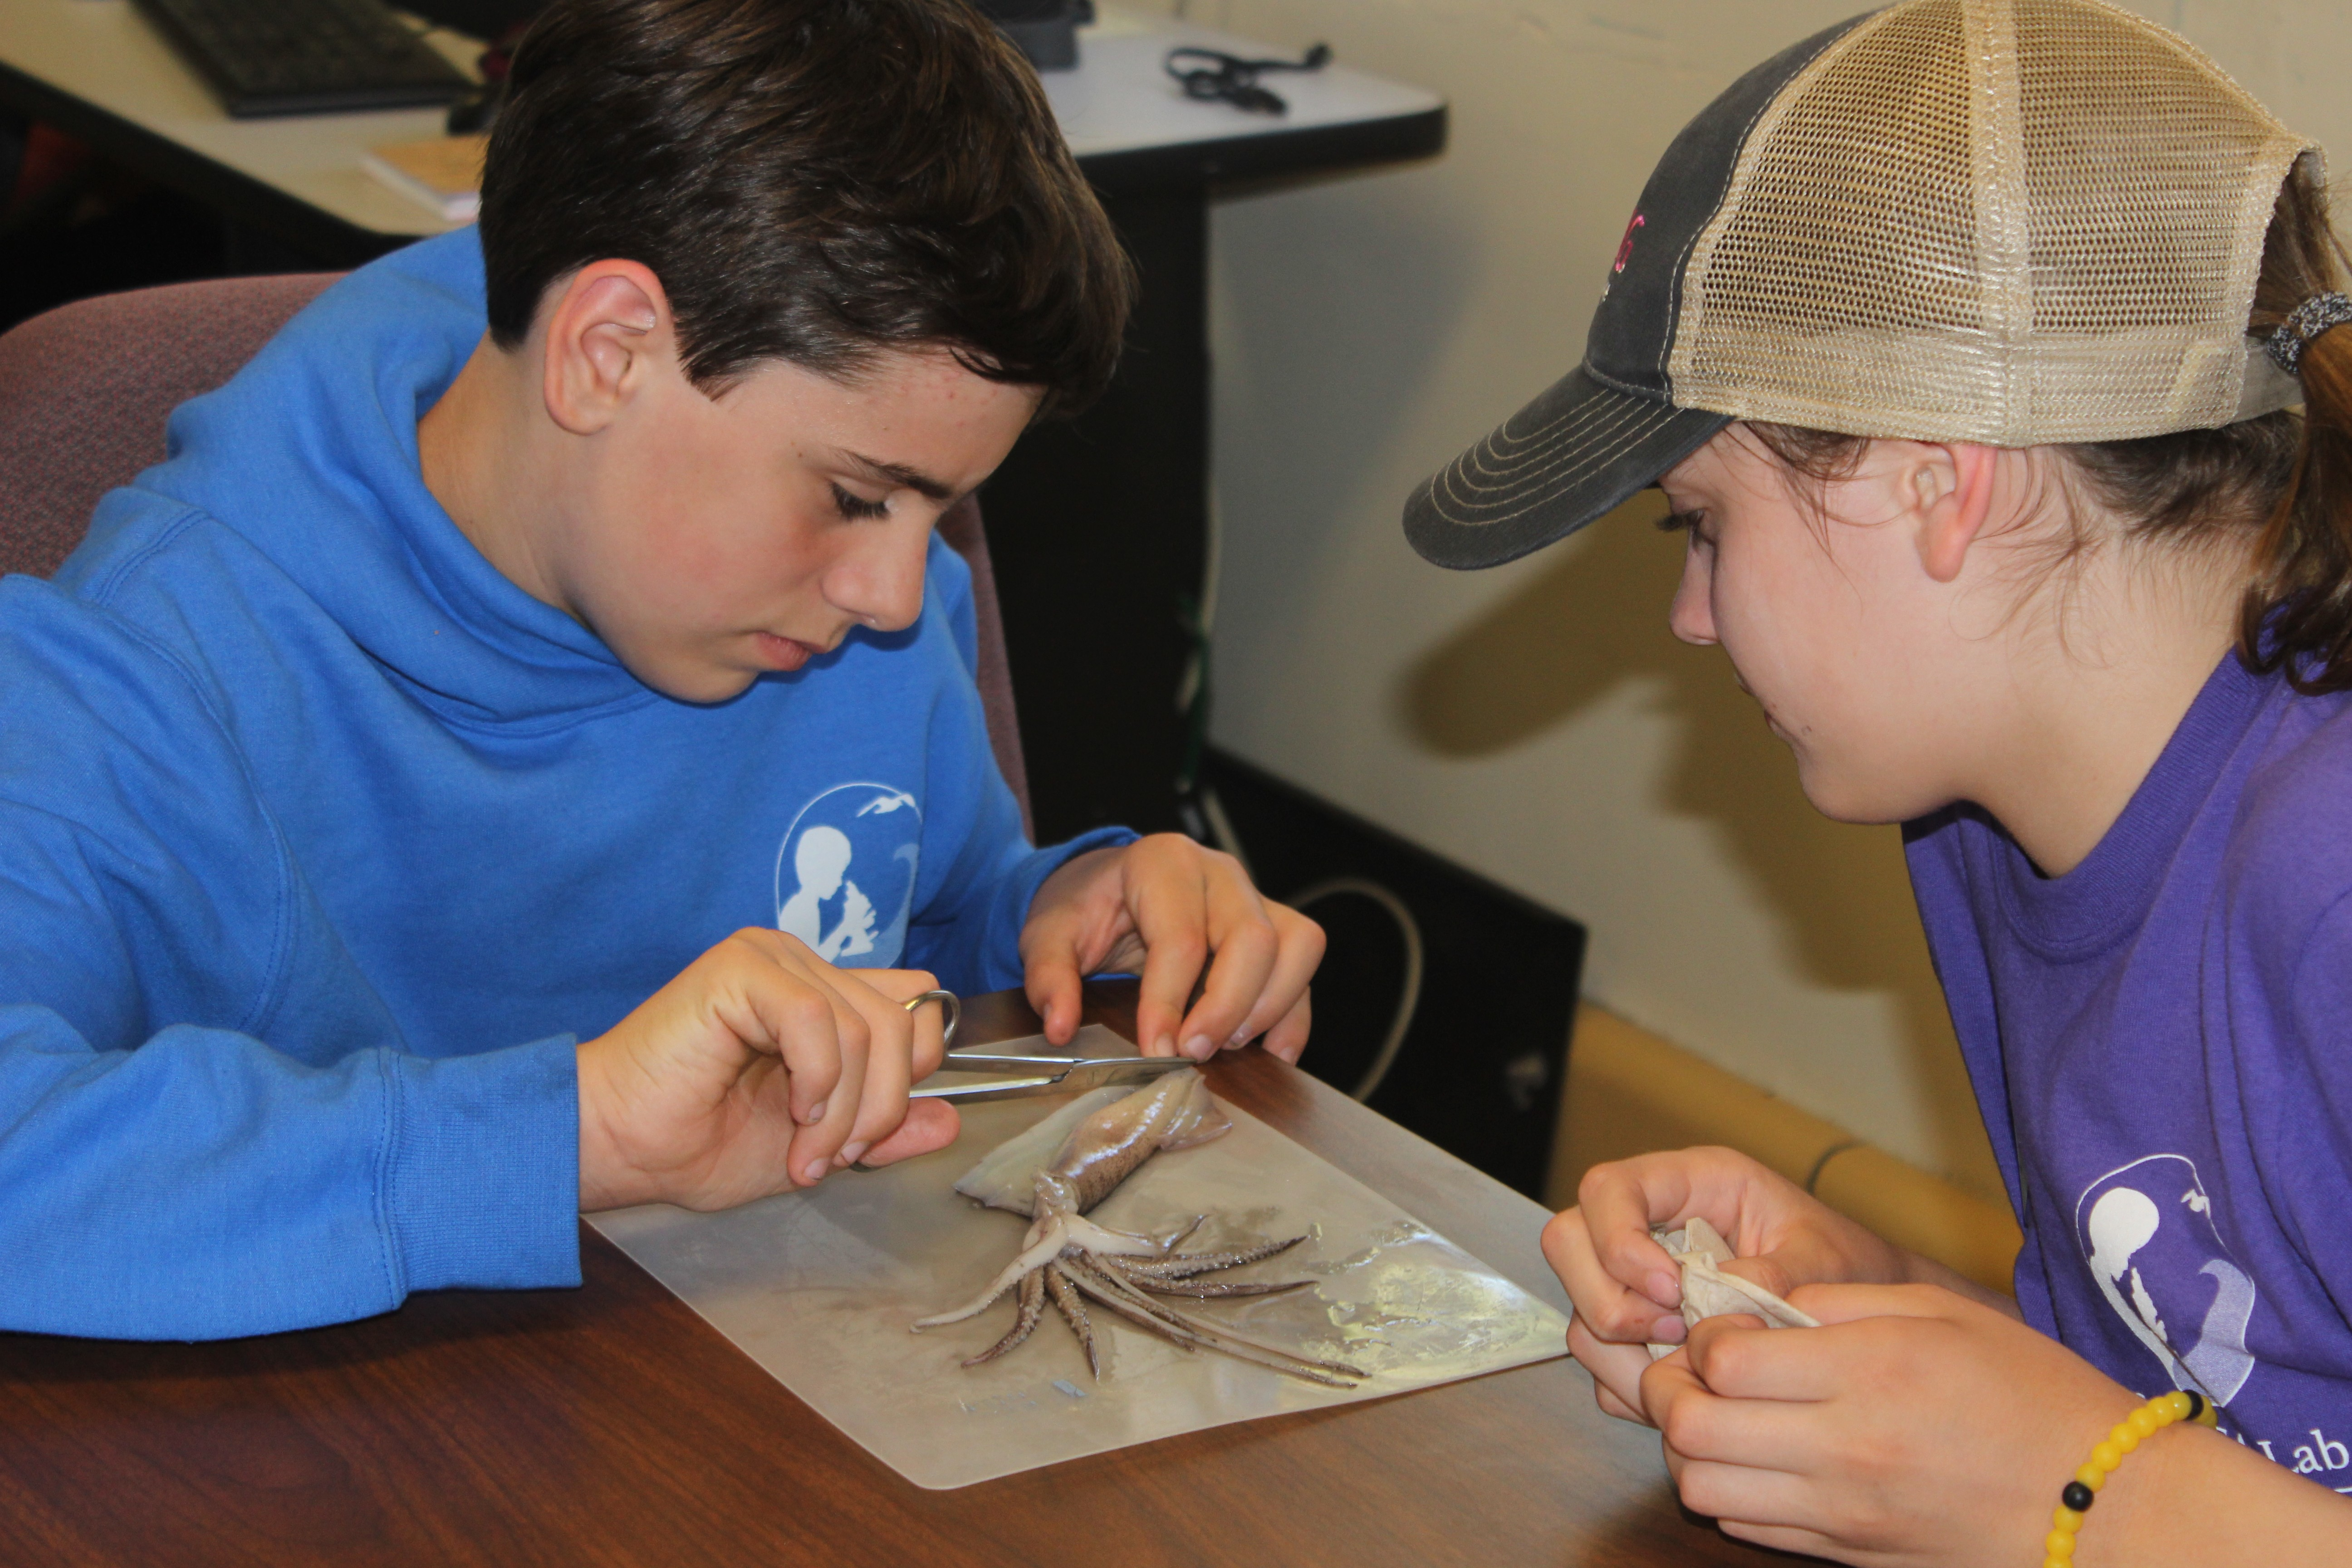 Students dissecting a fish